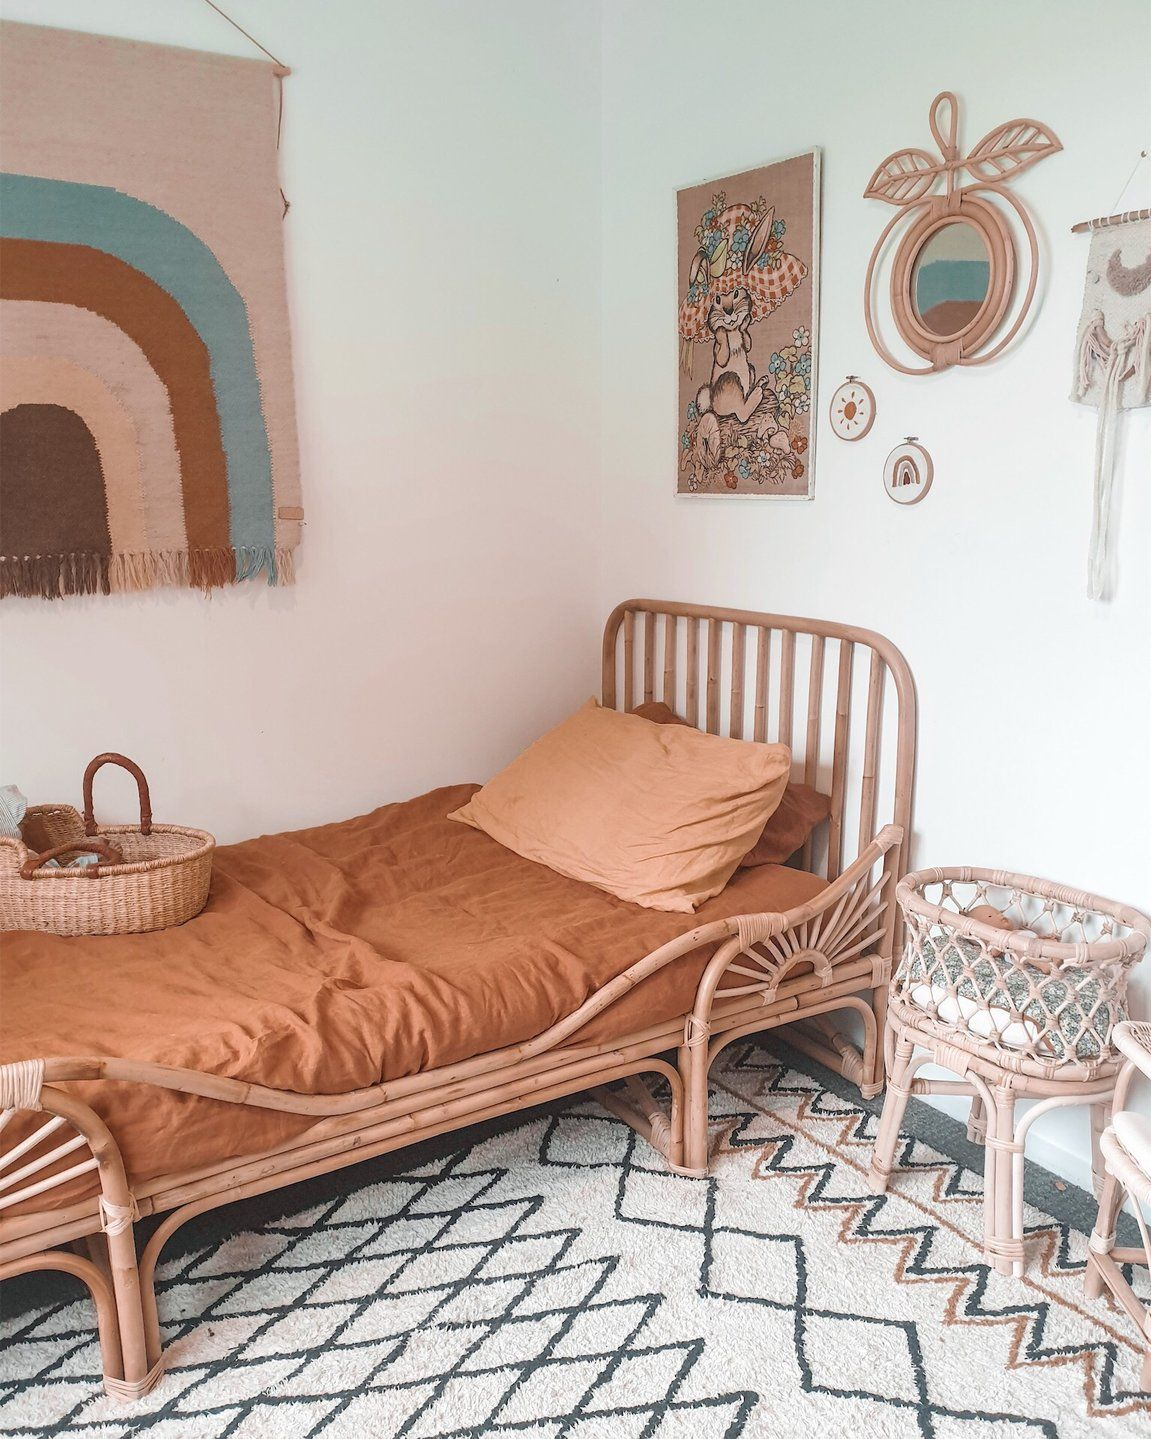 Rainbow Rattan Bed in 2020 Rattan bed frame, Home room